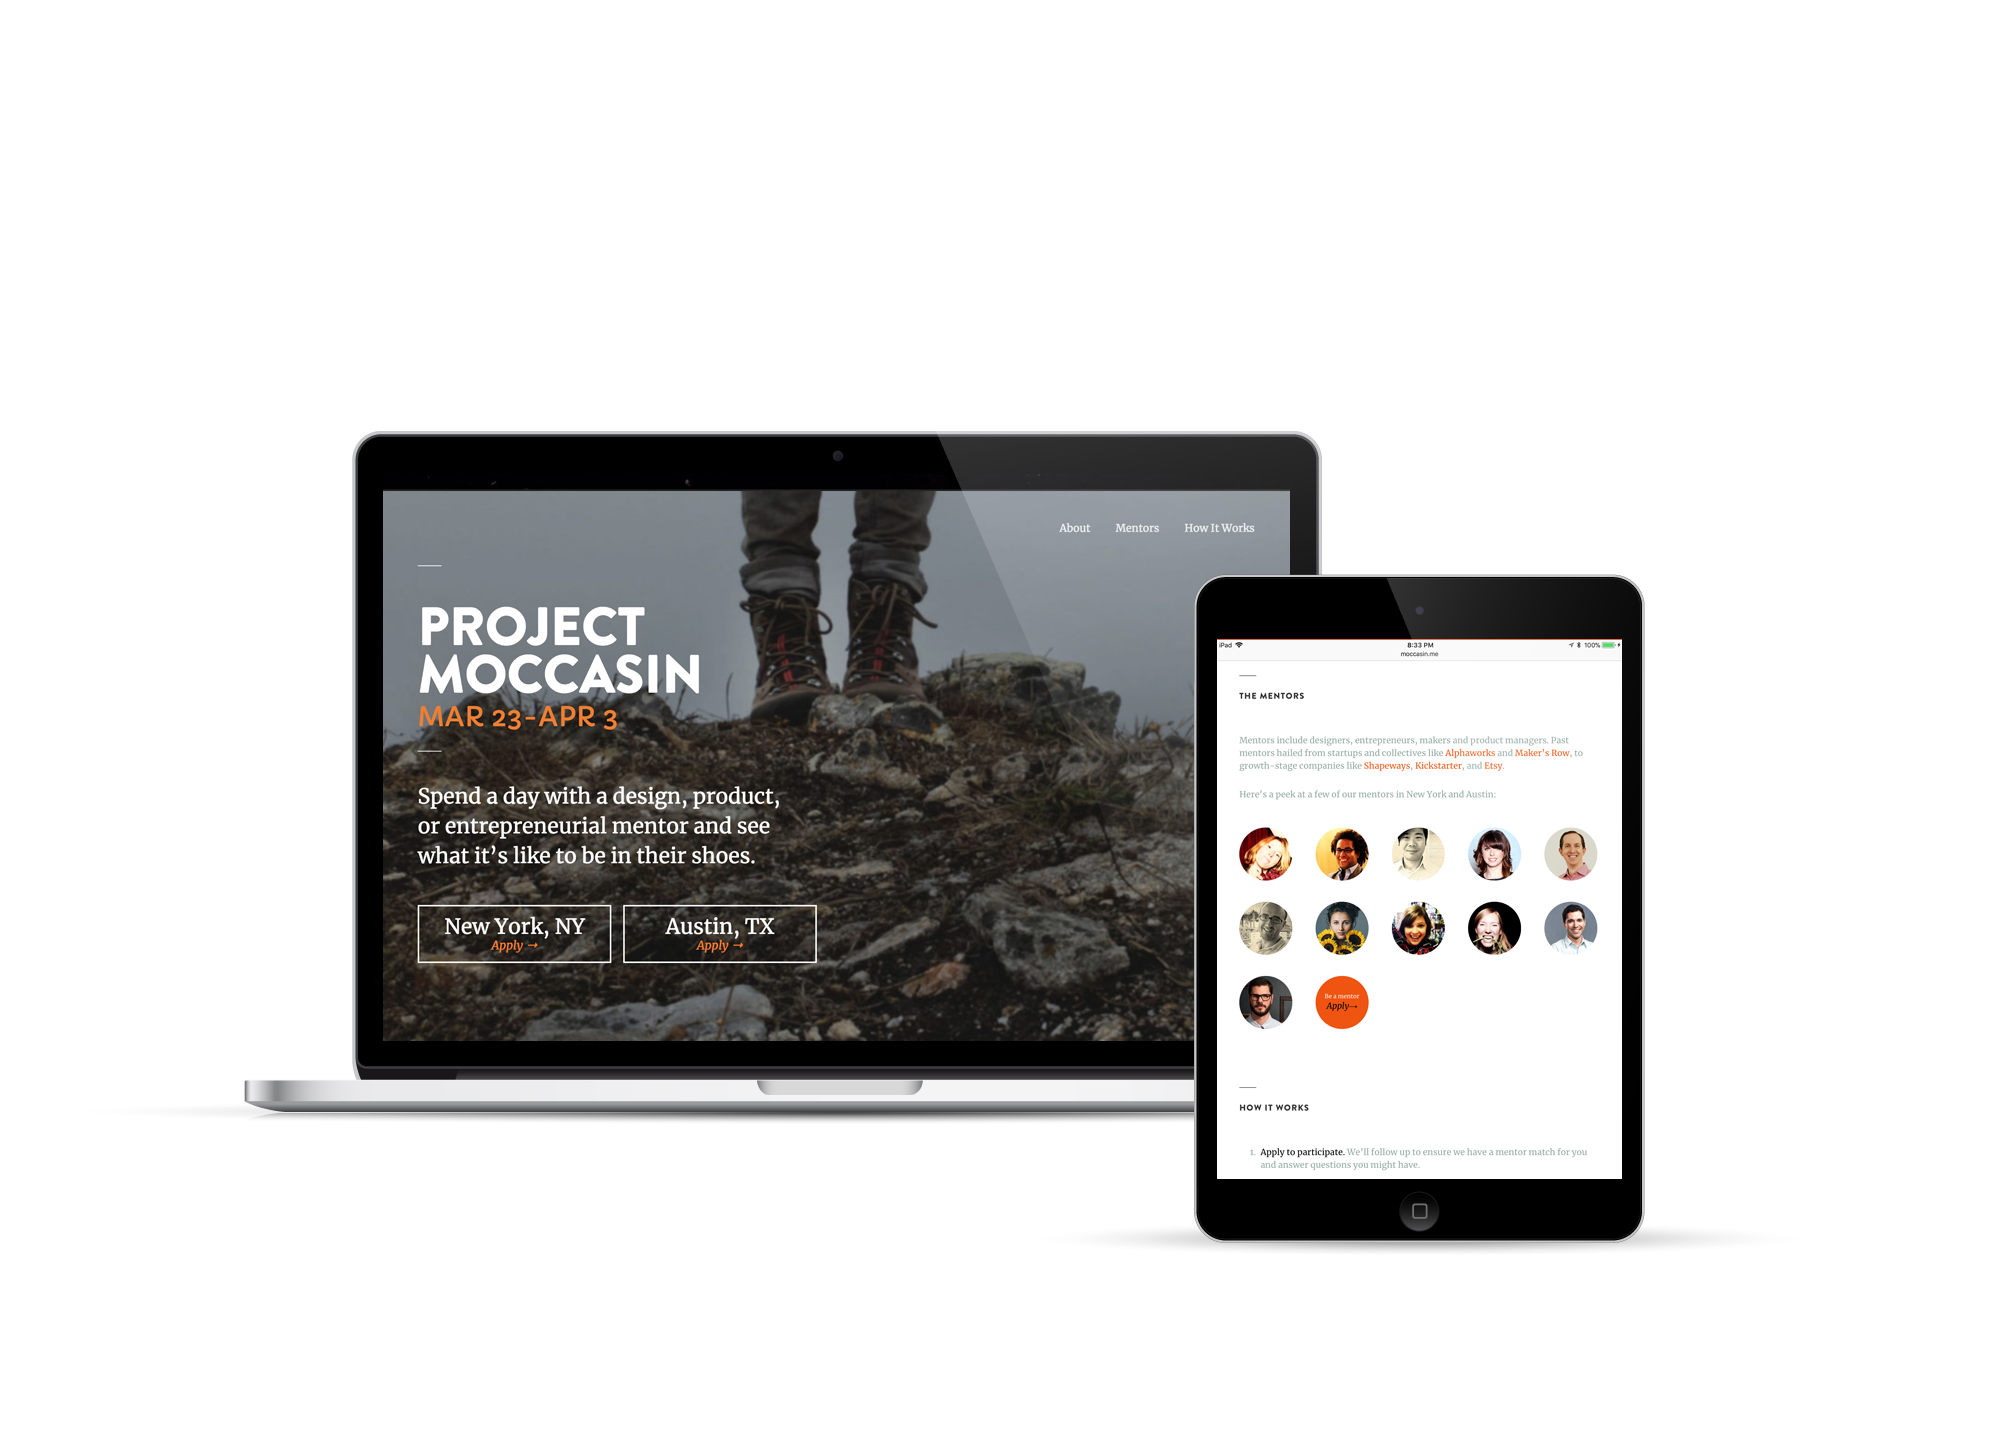 project moccasin screens